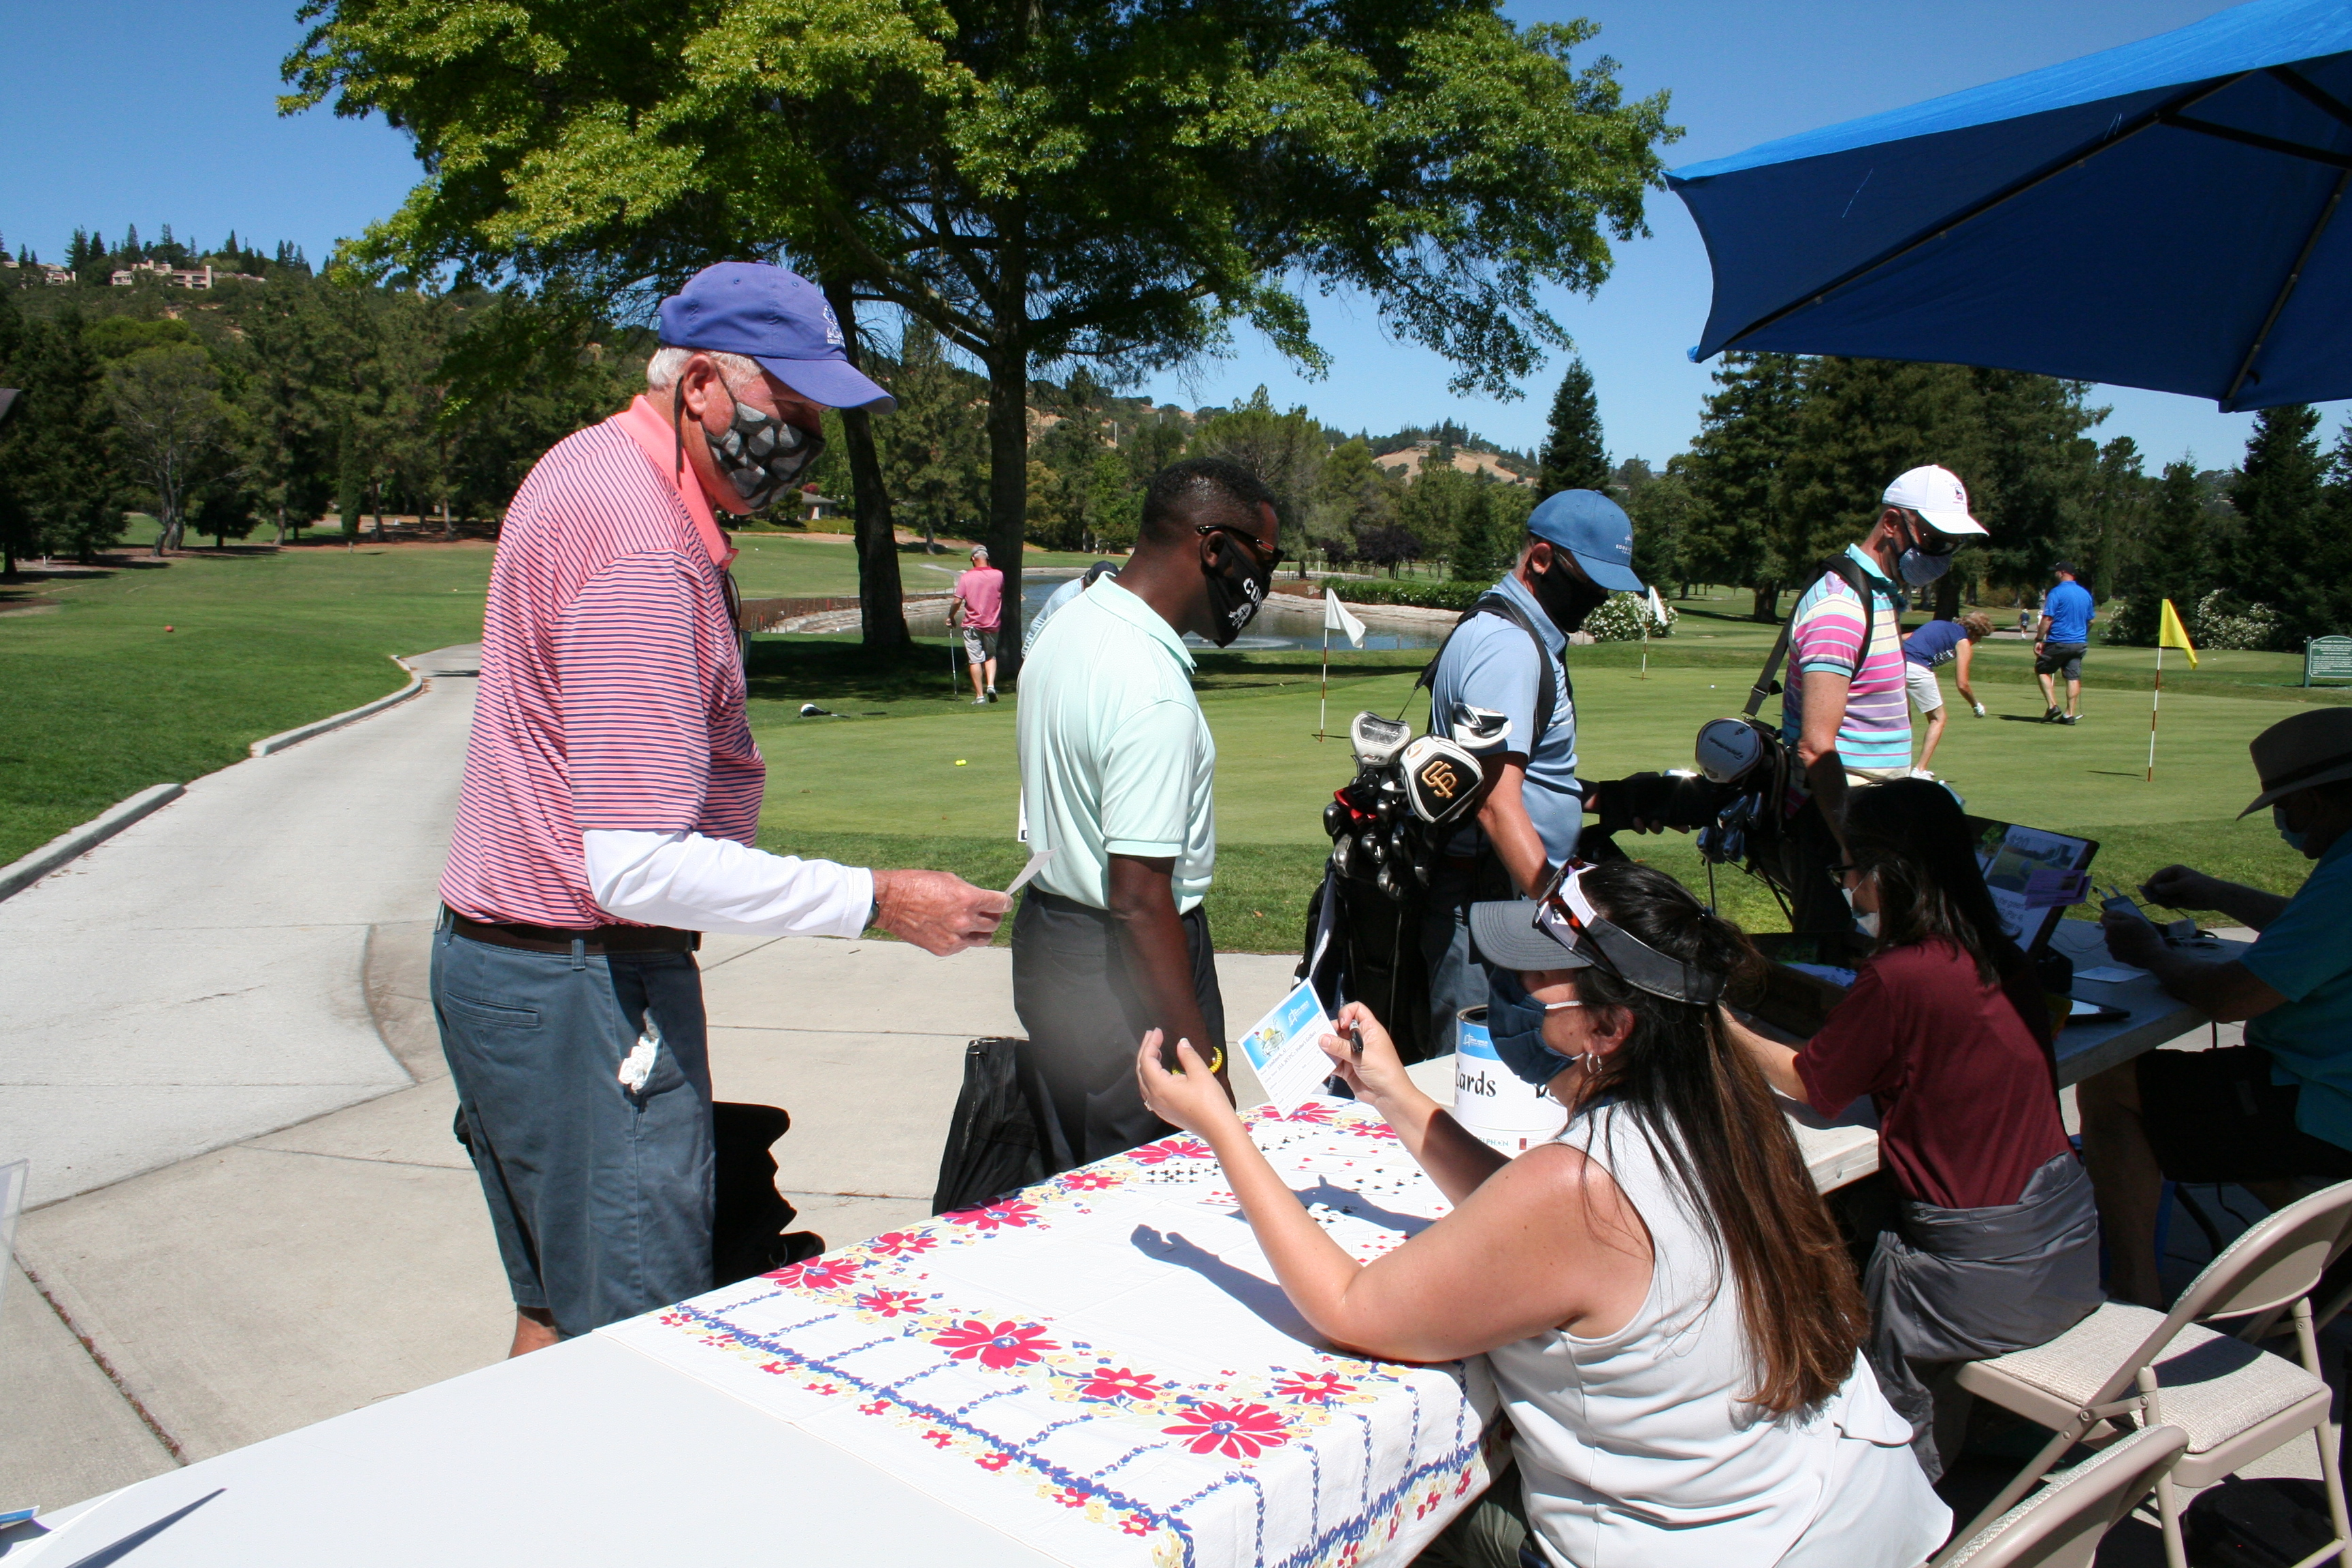 Bay Area Rescue Mission - 26th Annual New Life Golf Tournament gallery image #10